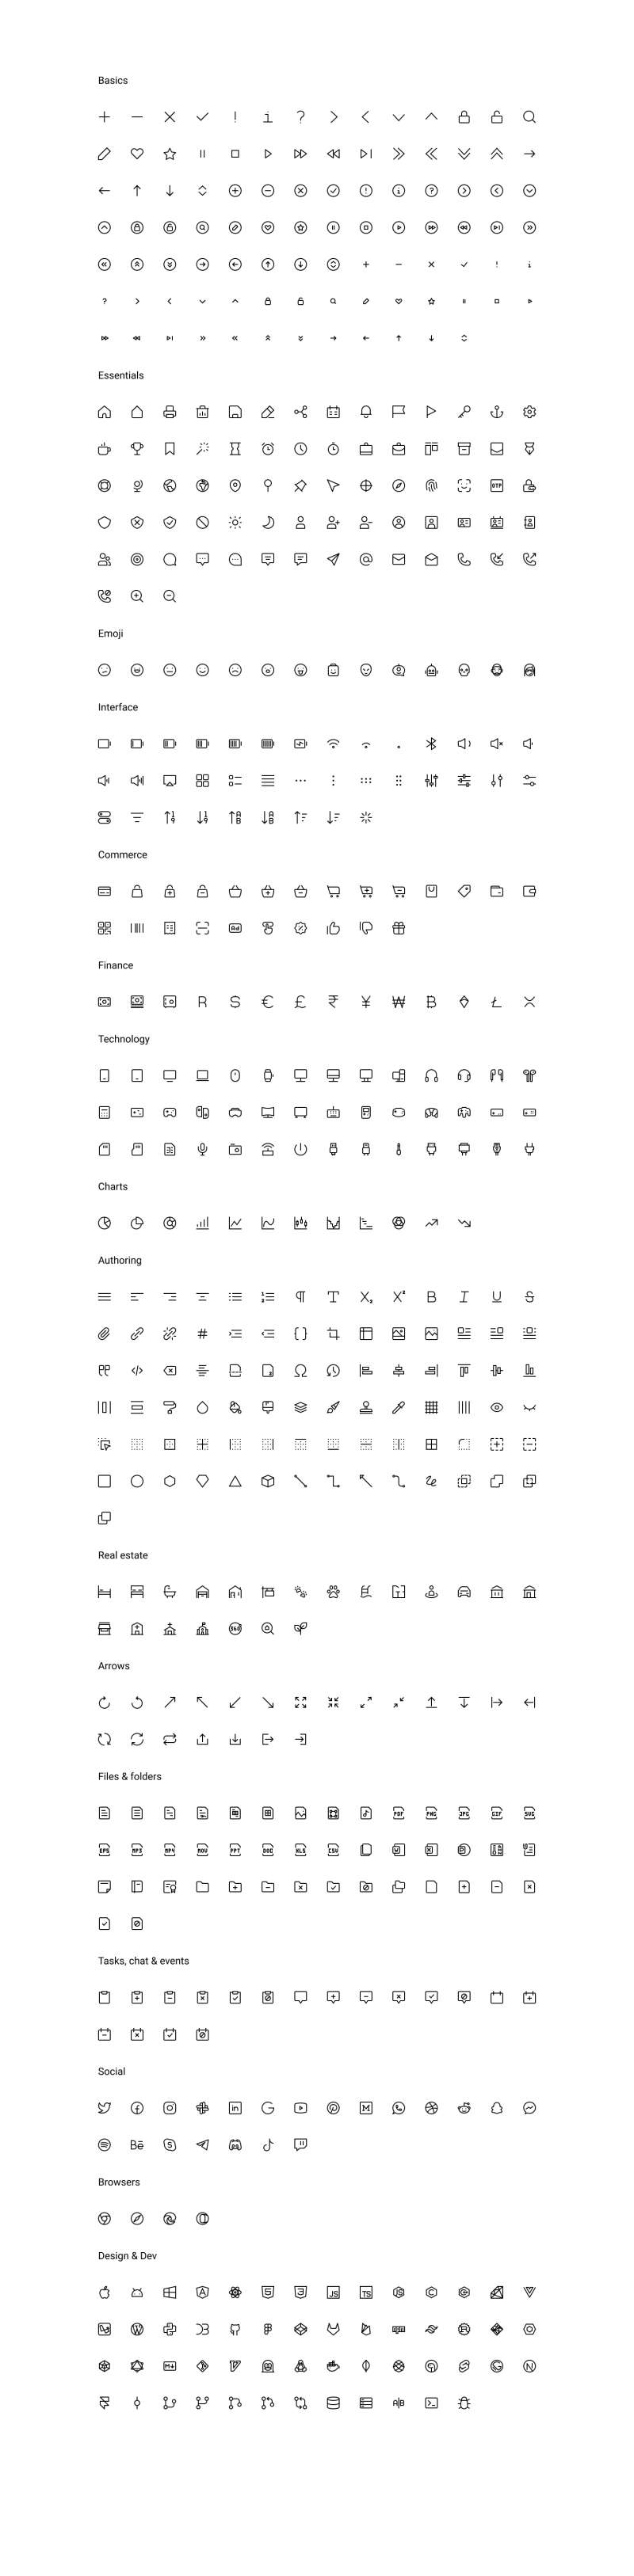 Teenyicons - Free Icon Set for Figma